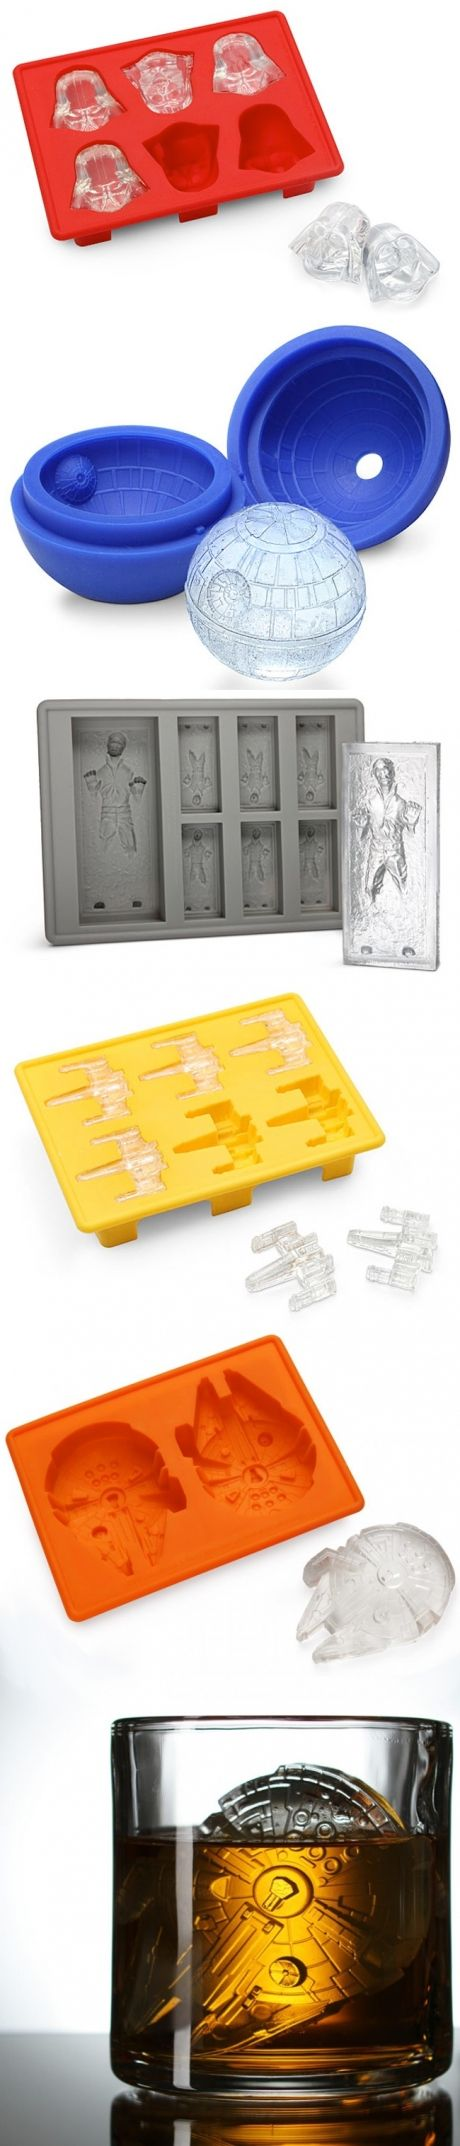 Star Wars Ice Cube Molds!!!